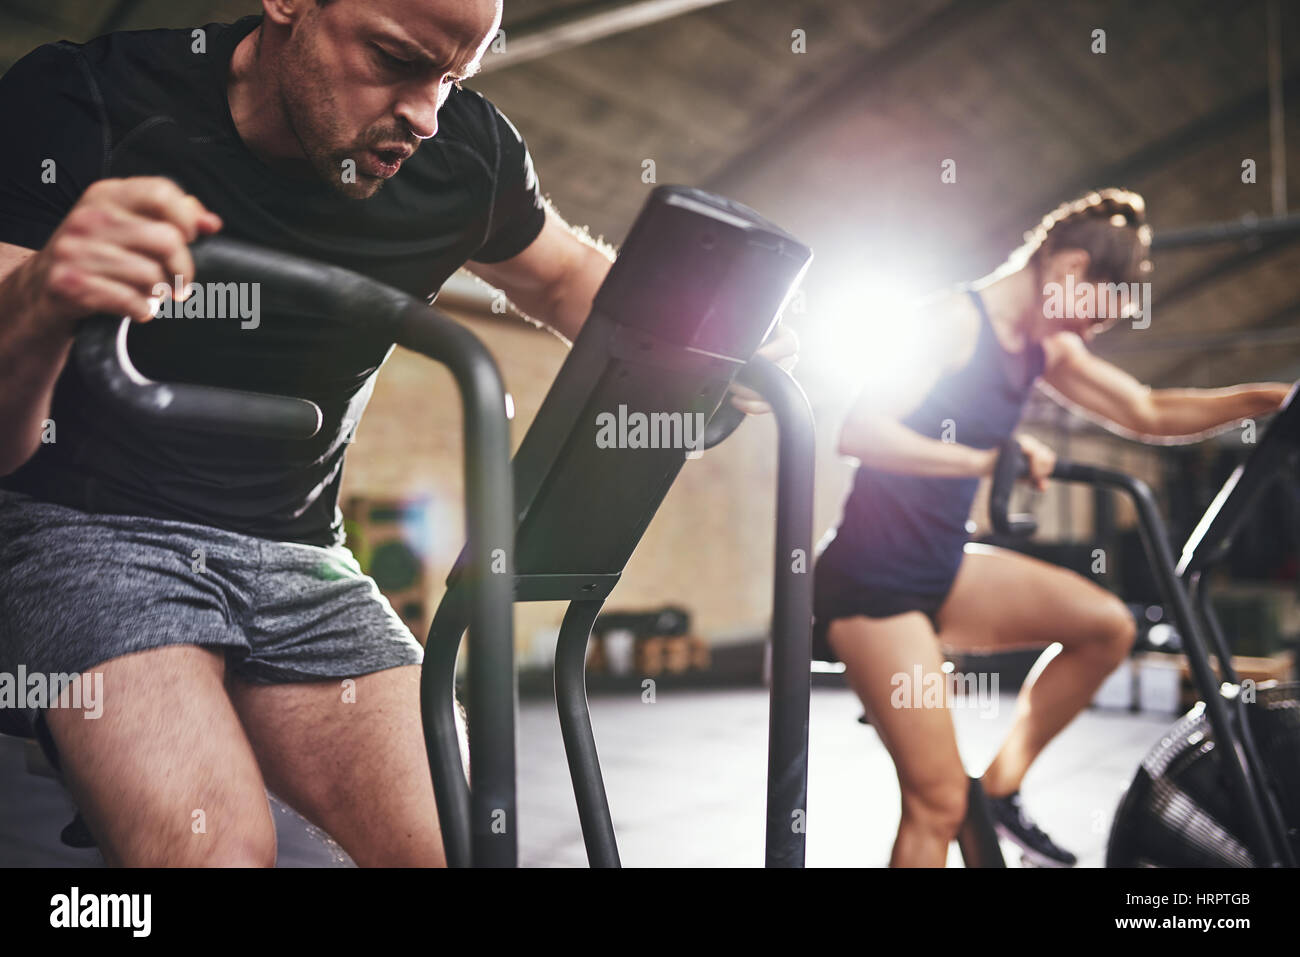 Young man and woman grimacing and riding cycling machines in hard efforts. - Stock Image